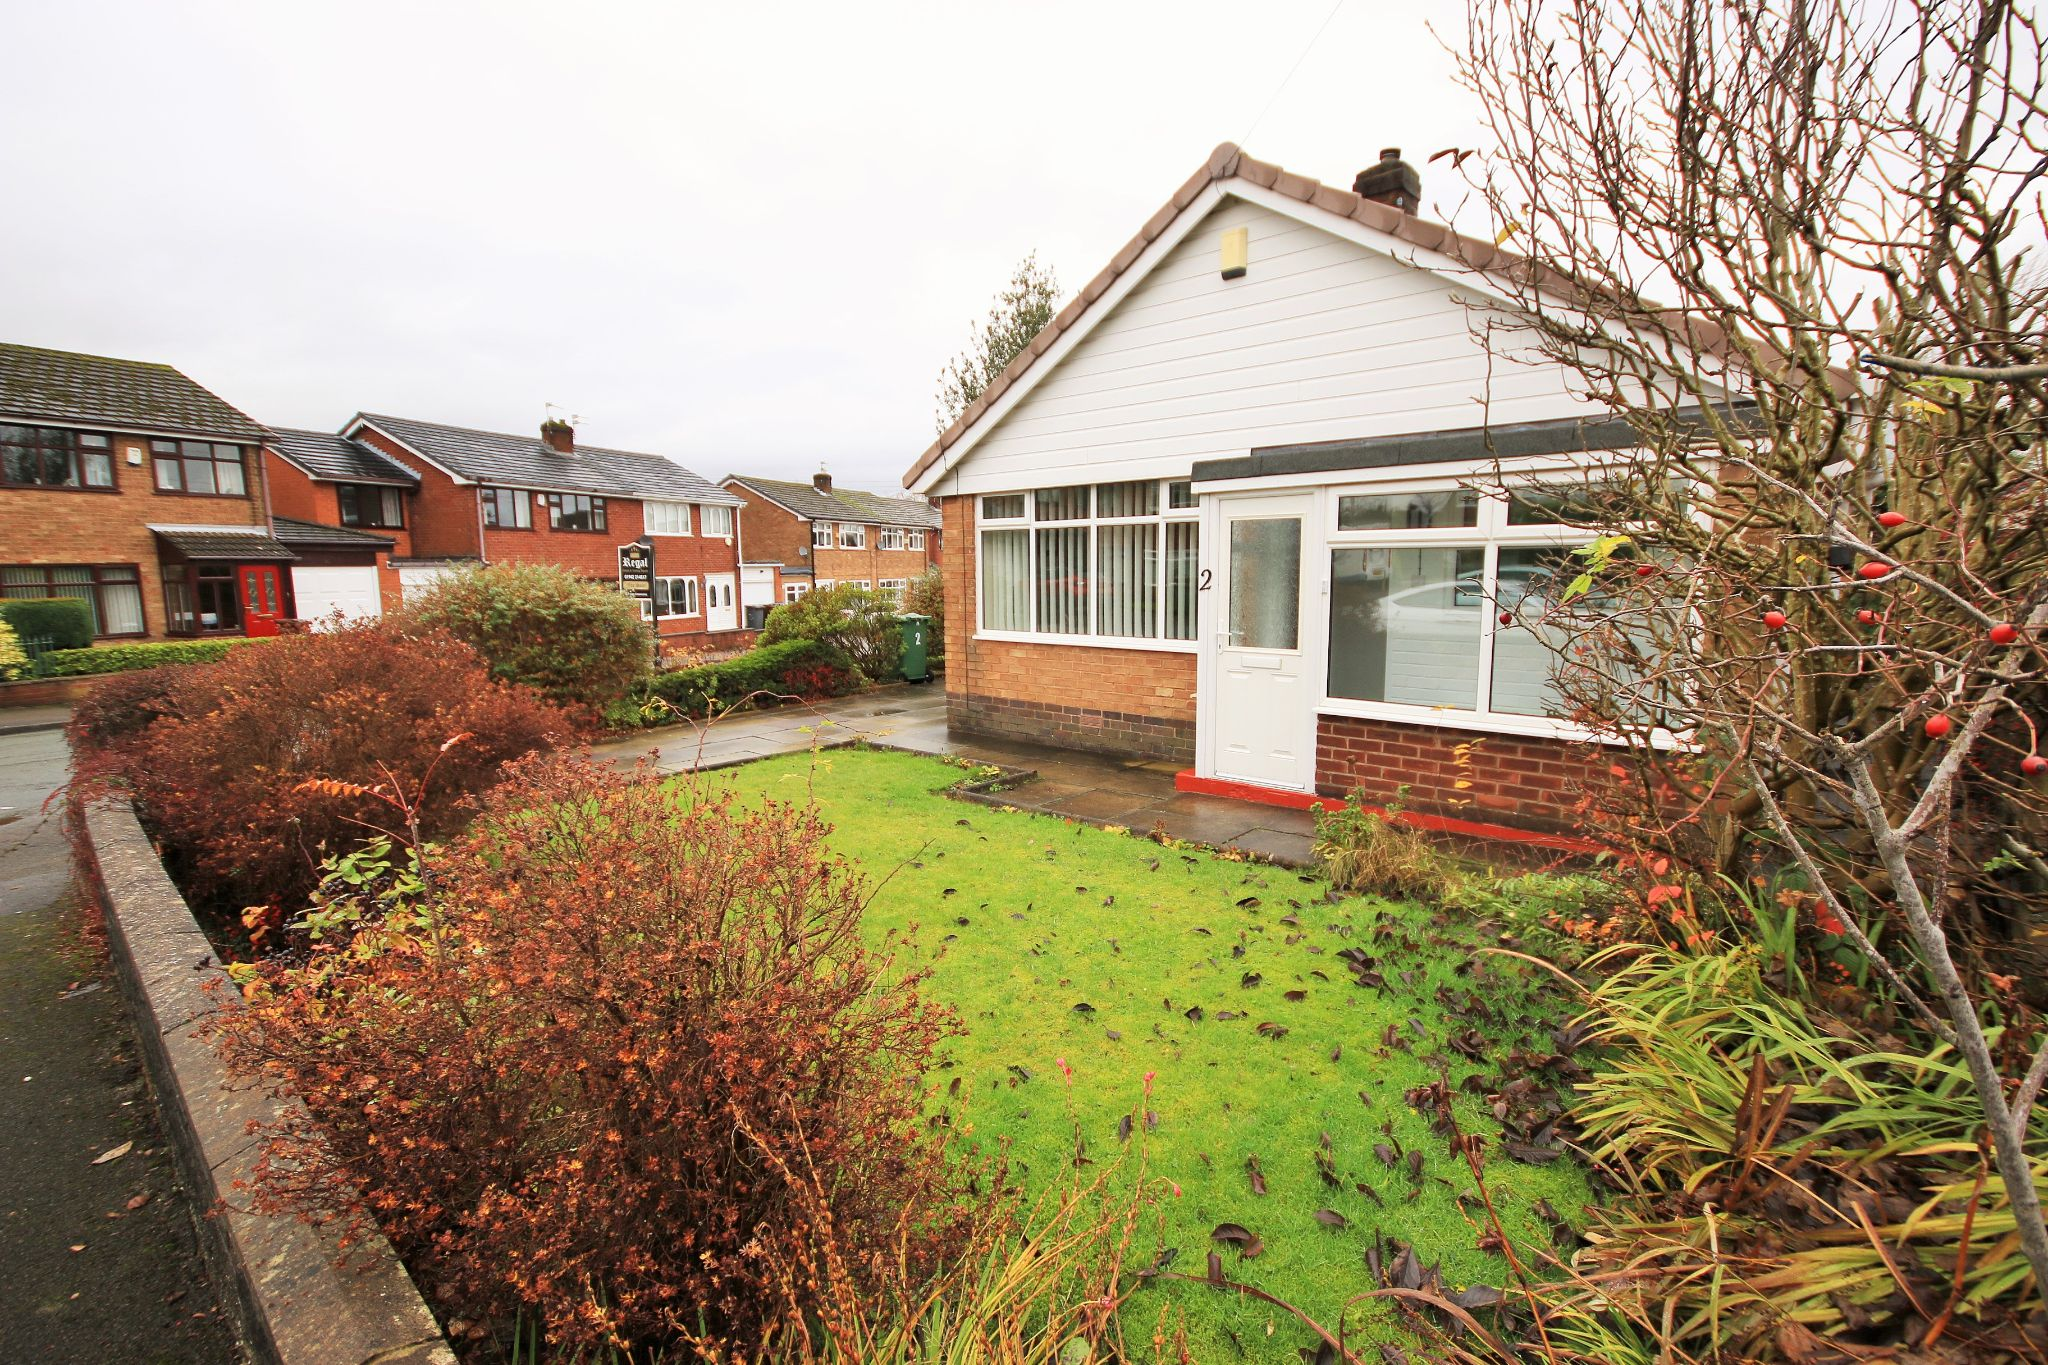 2 Bedroom Detached Bungalow To Rent - Photograph 3